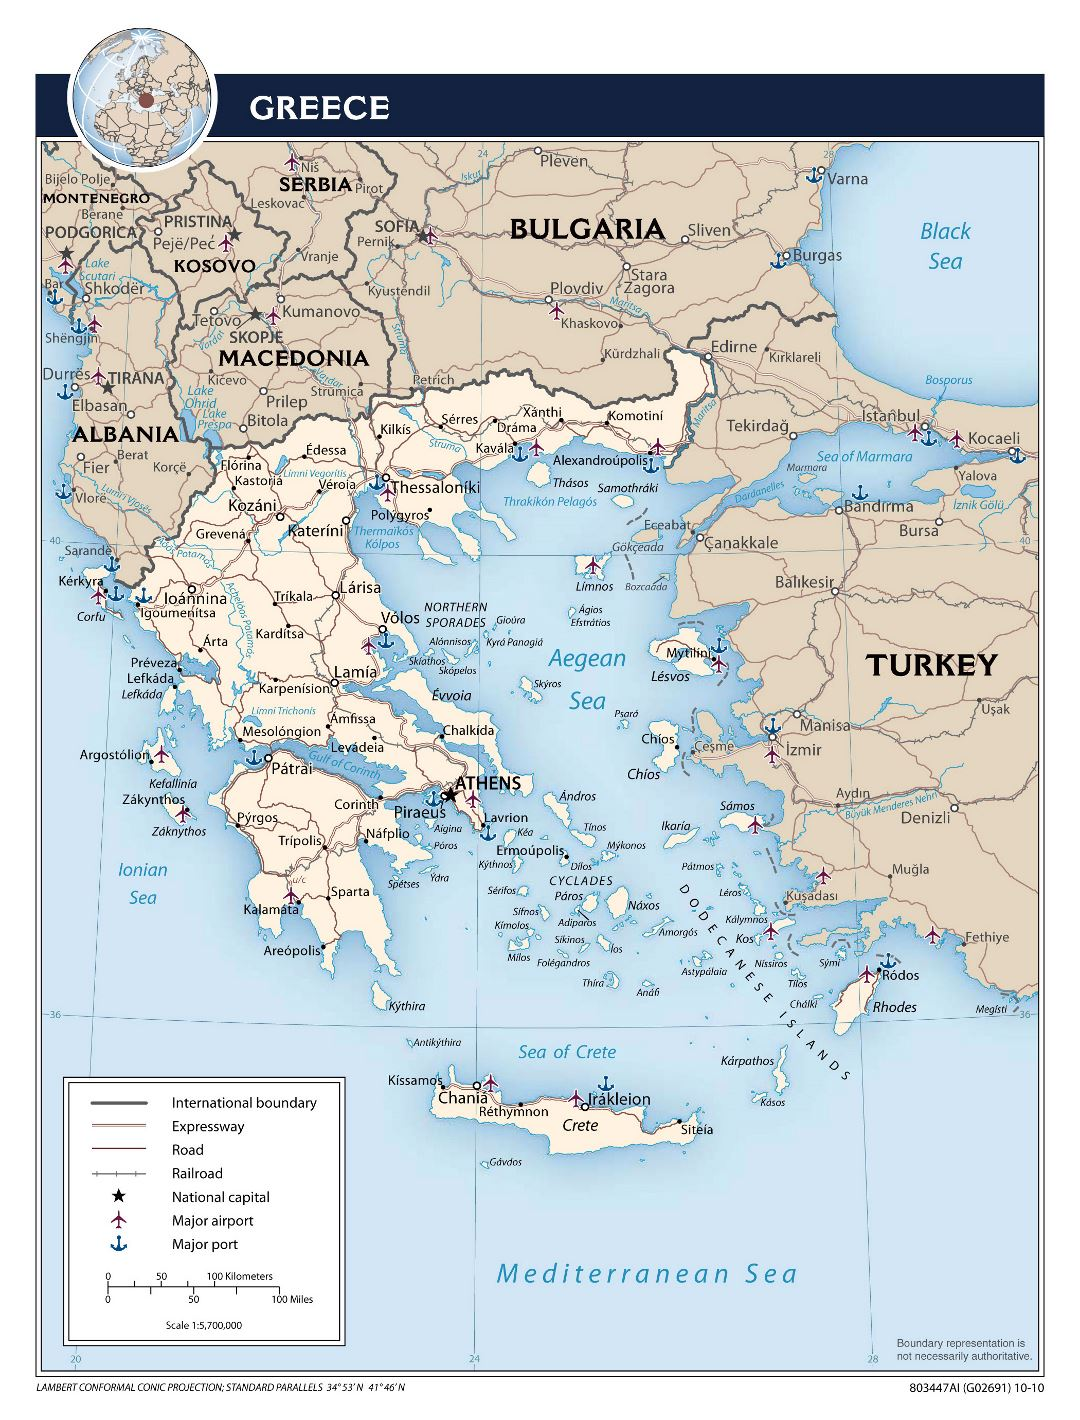 Large scale political map of Greece with roads, major cities, airports and seaports - 2010